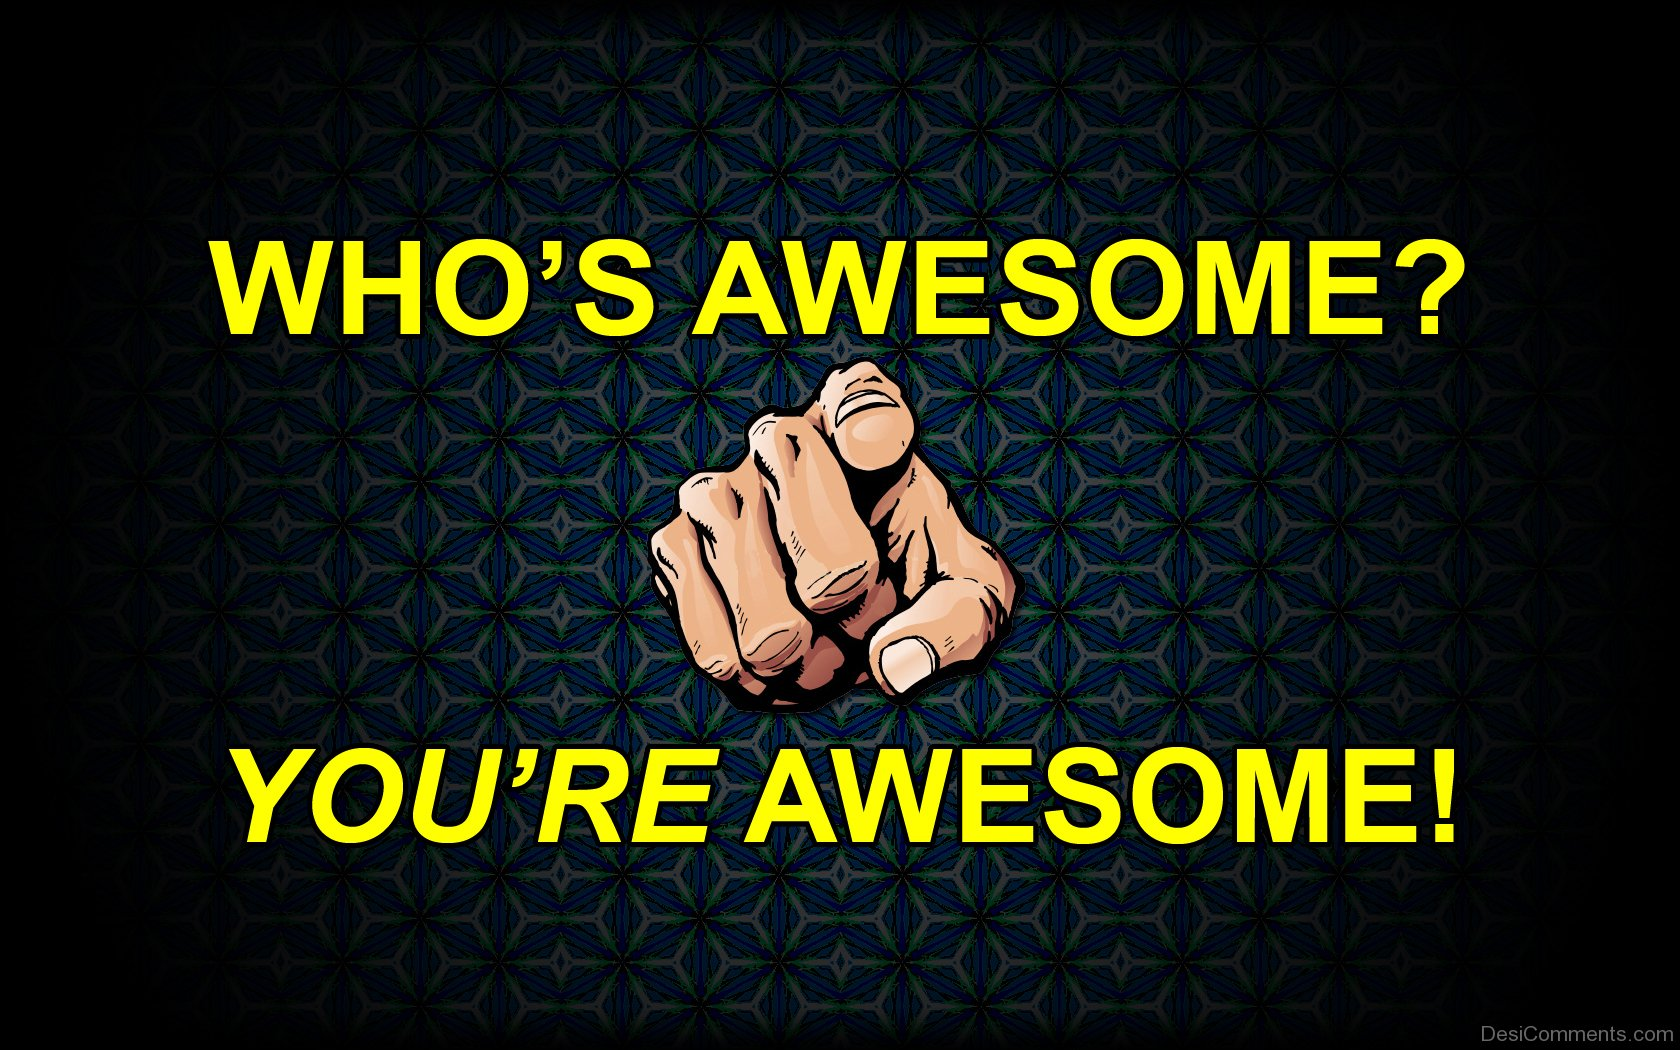 Who's Awesome – You're Awesome - DesiComments.com